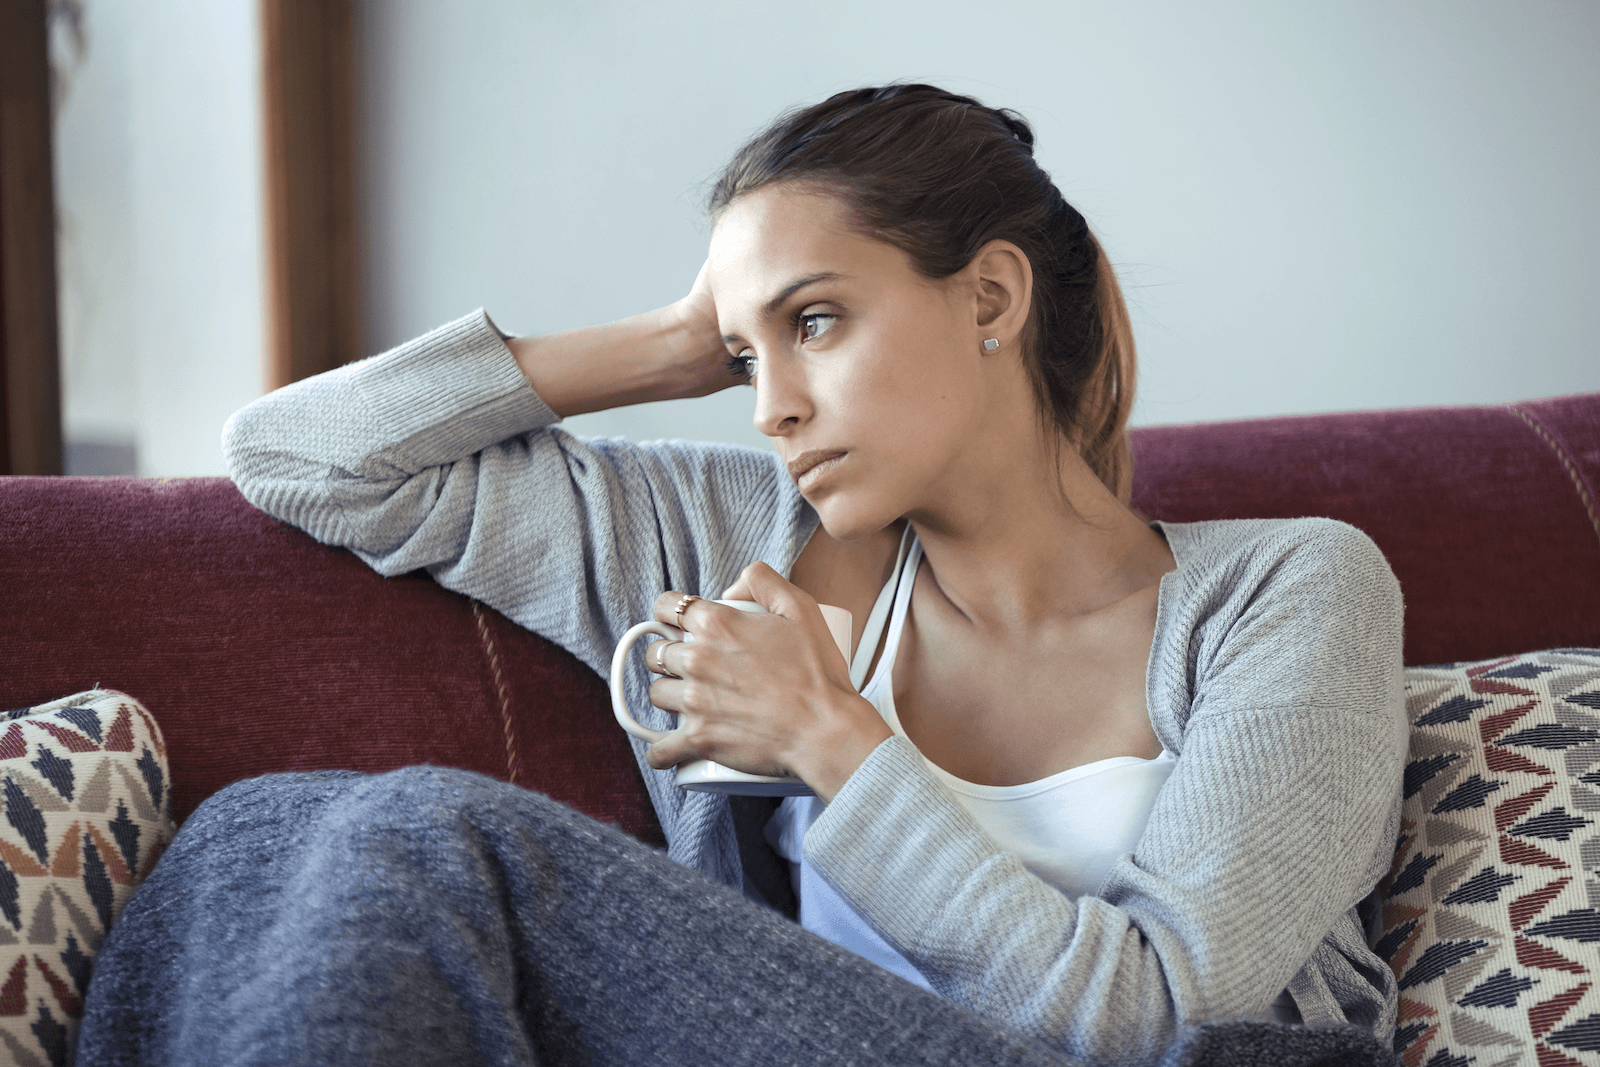 neuroplasticity healing: Woman looking deep in thought while sitting on a couch and holding a coffee mug